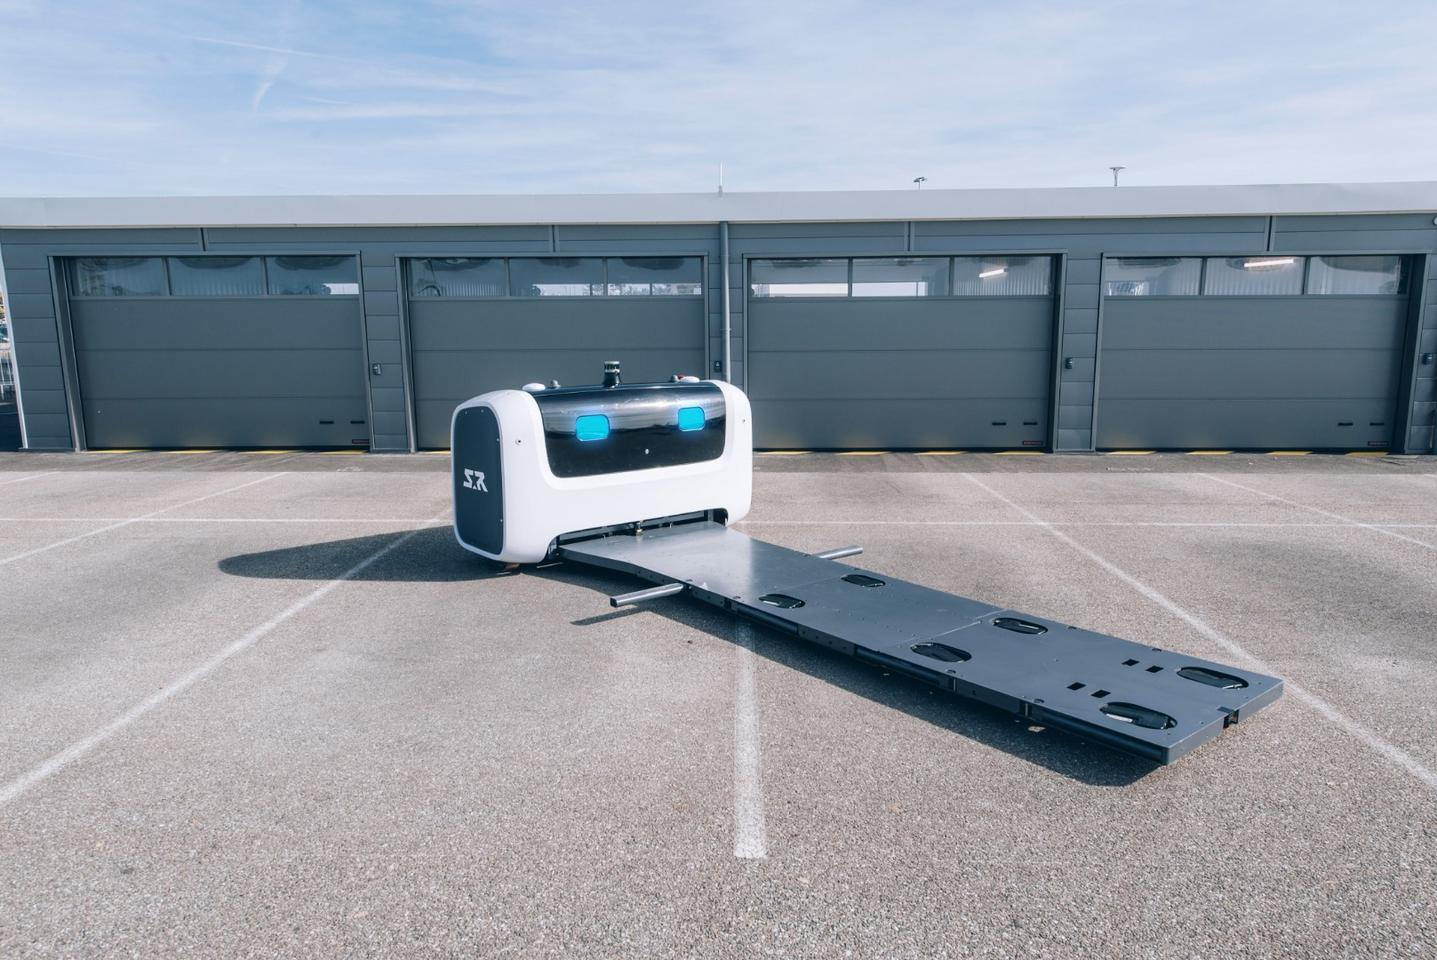 The Stan robot sans car - features a large pickup platform